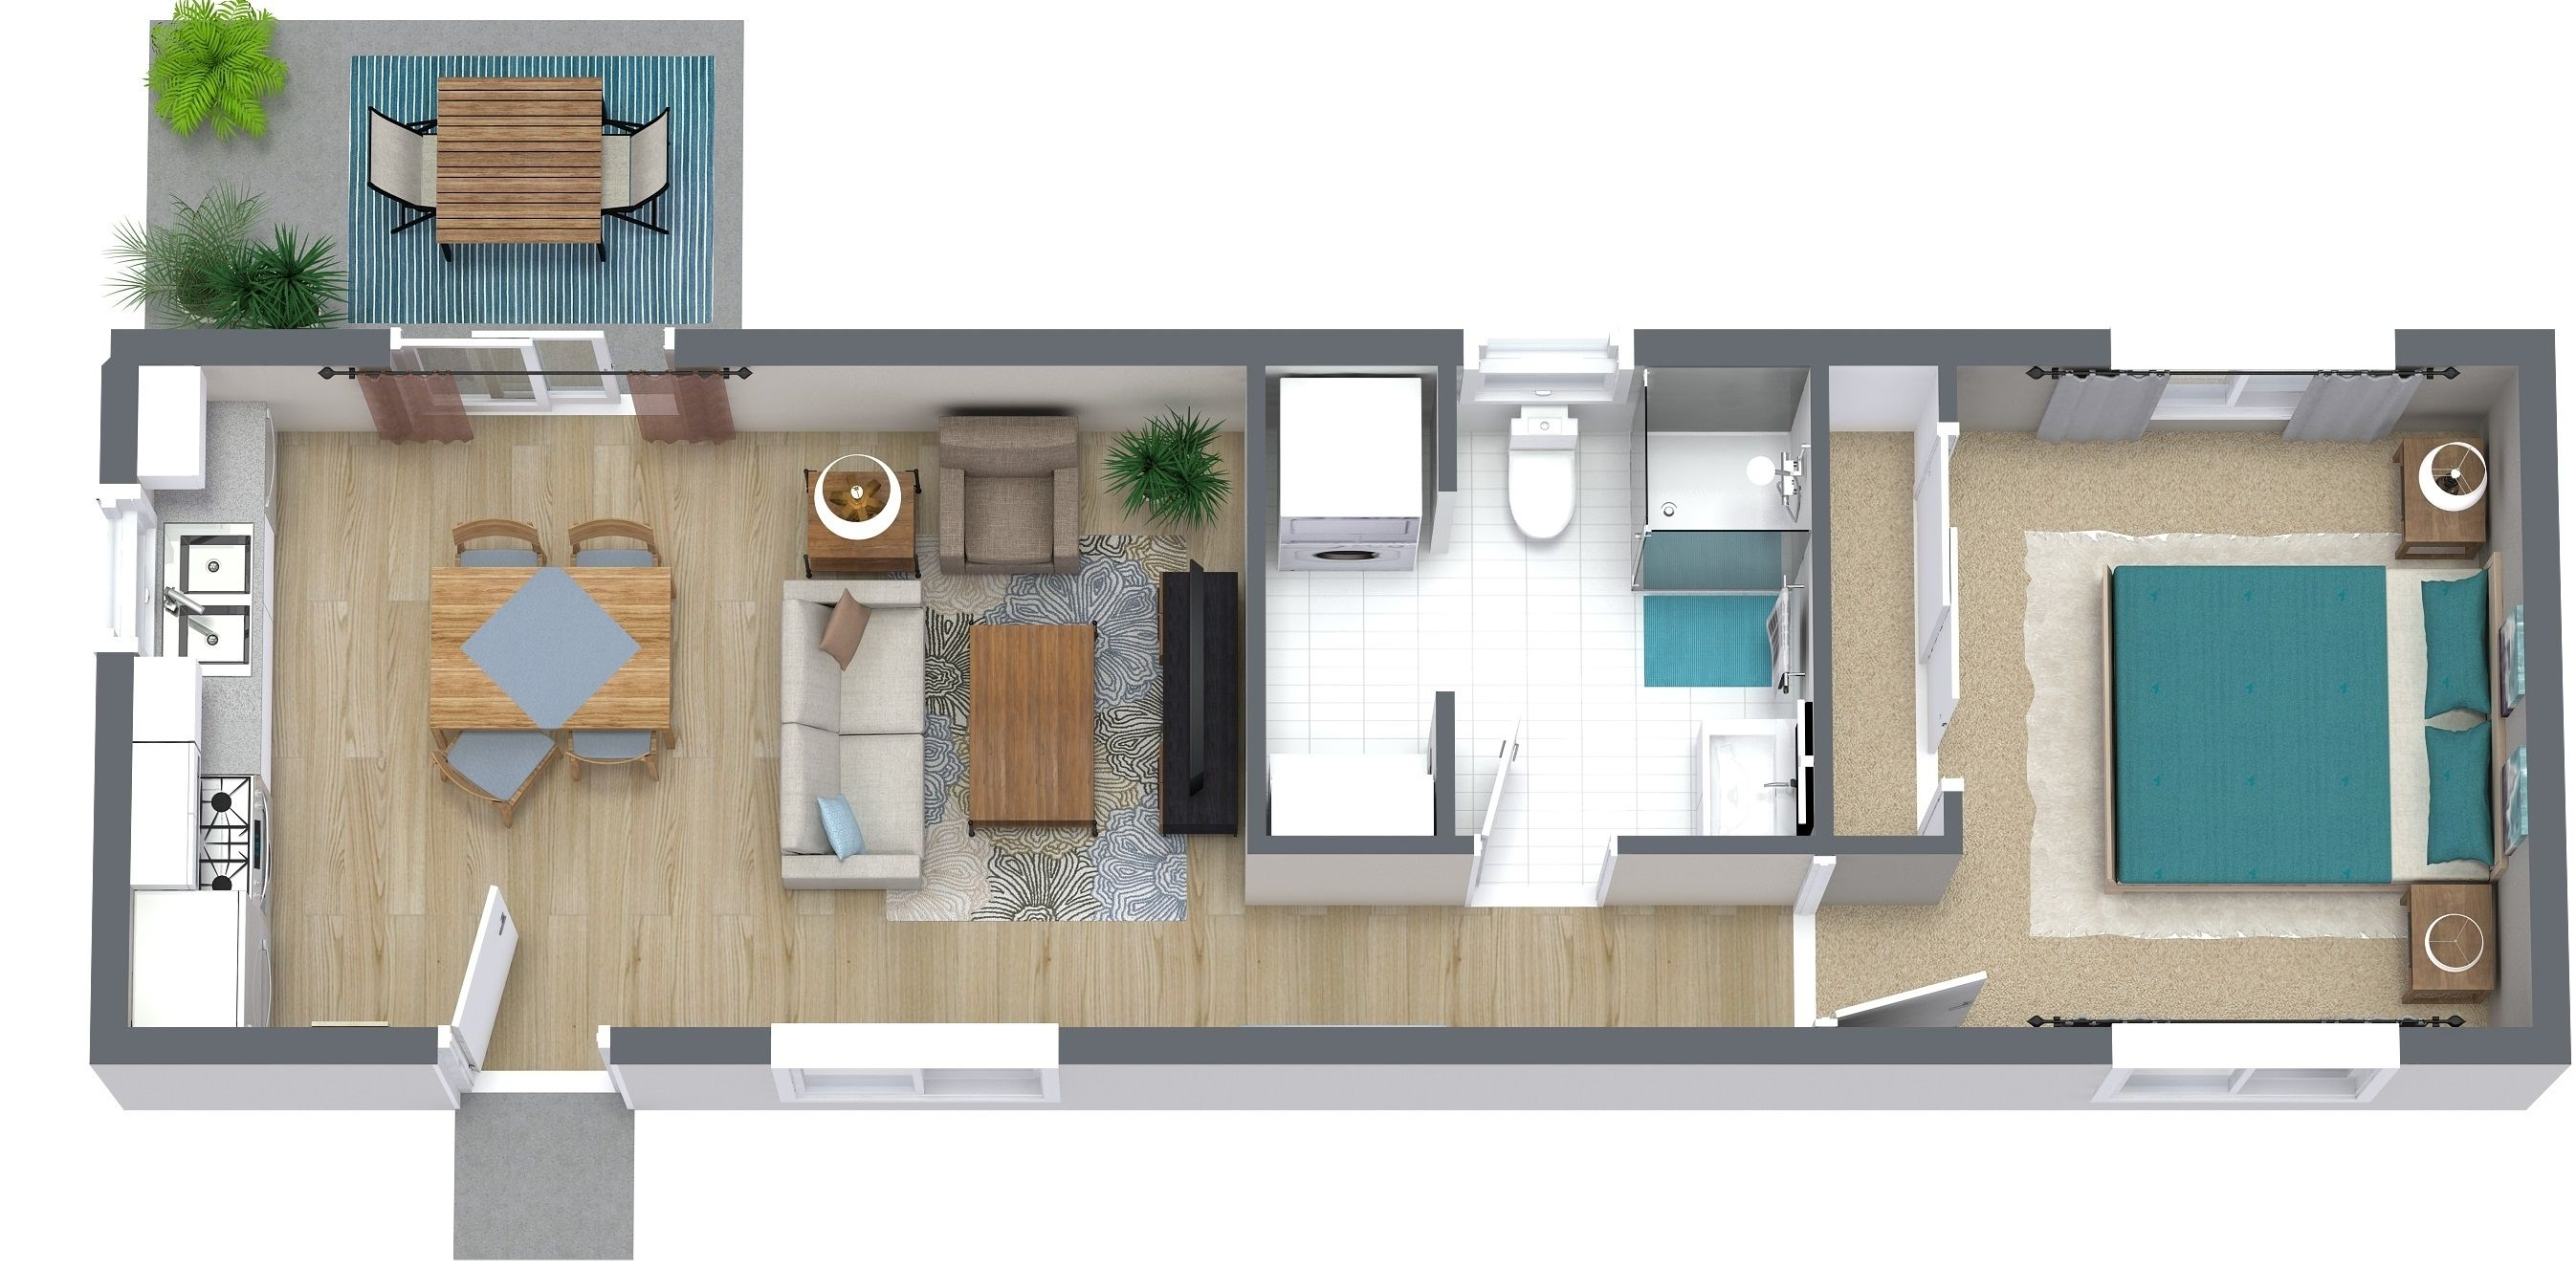 The Los Angeles 645sf Granny Flat